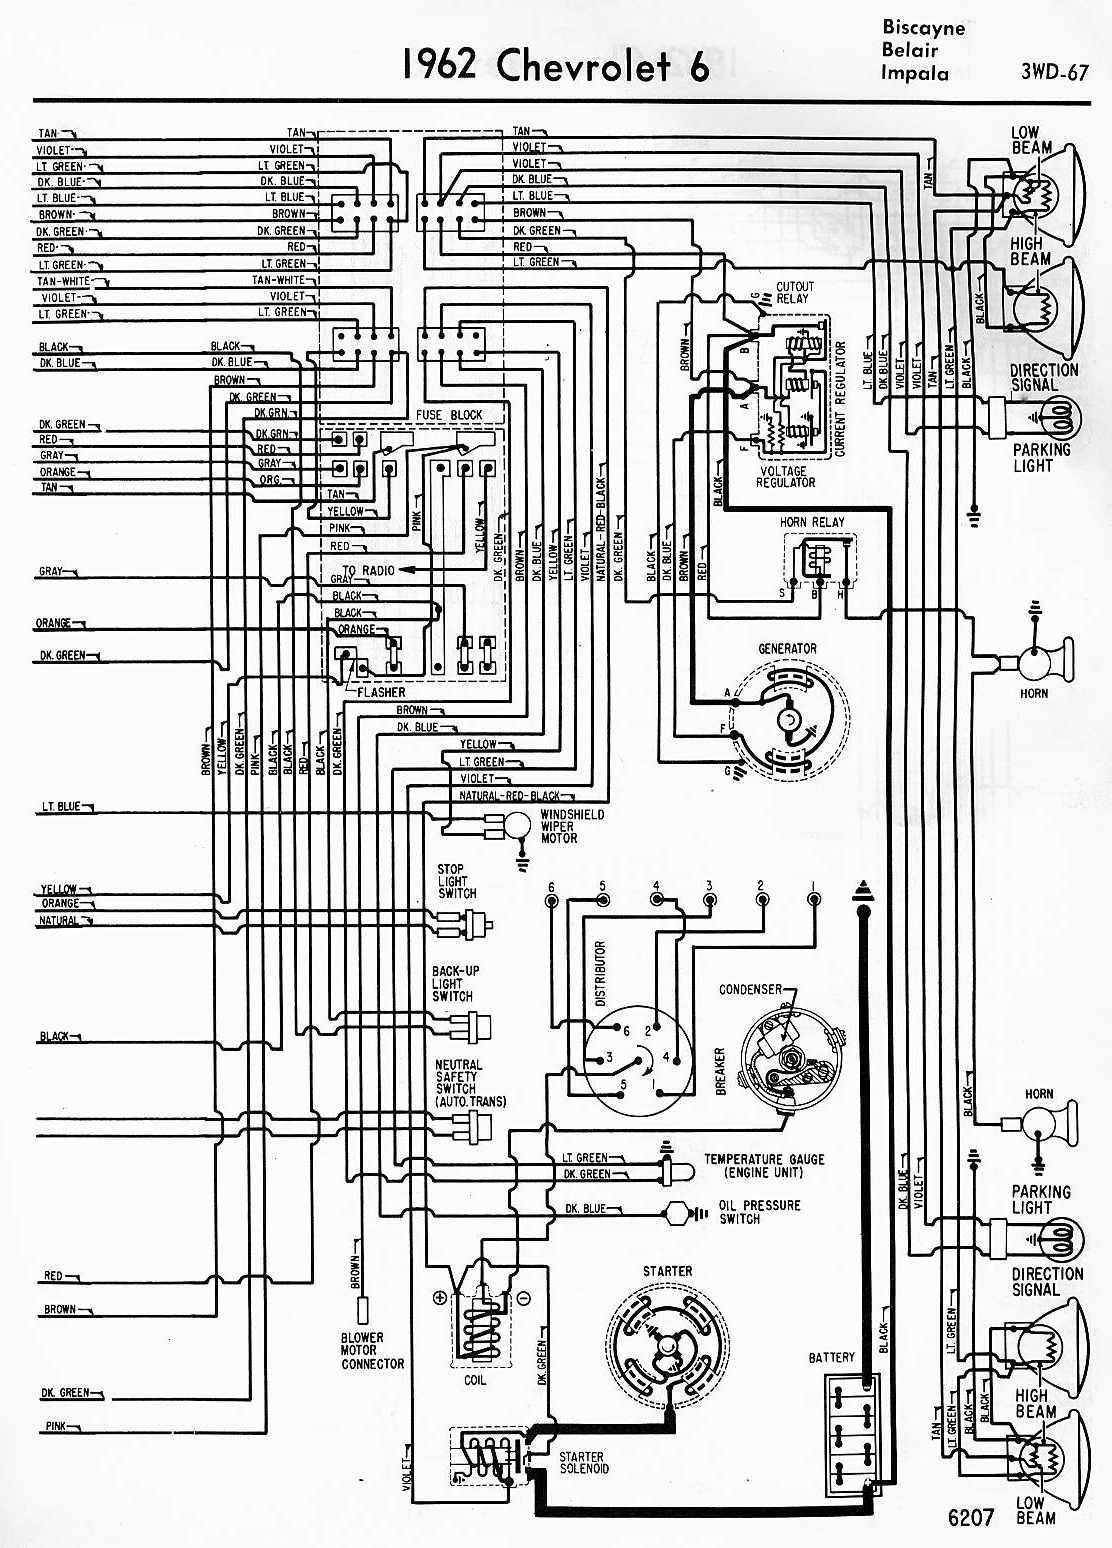 Stereo Wiring Harness Diagram 1970 Chevy C10 Ignition Switch Schematic Corvette Data